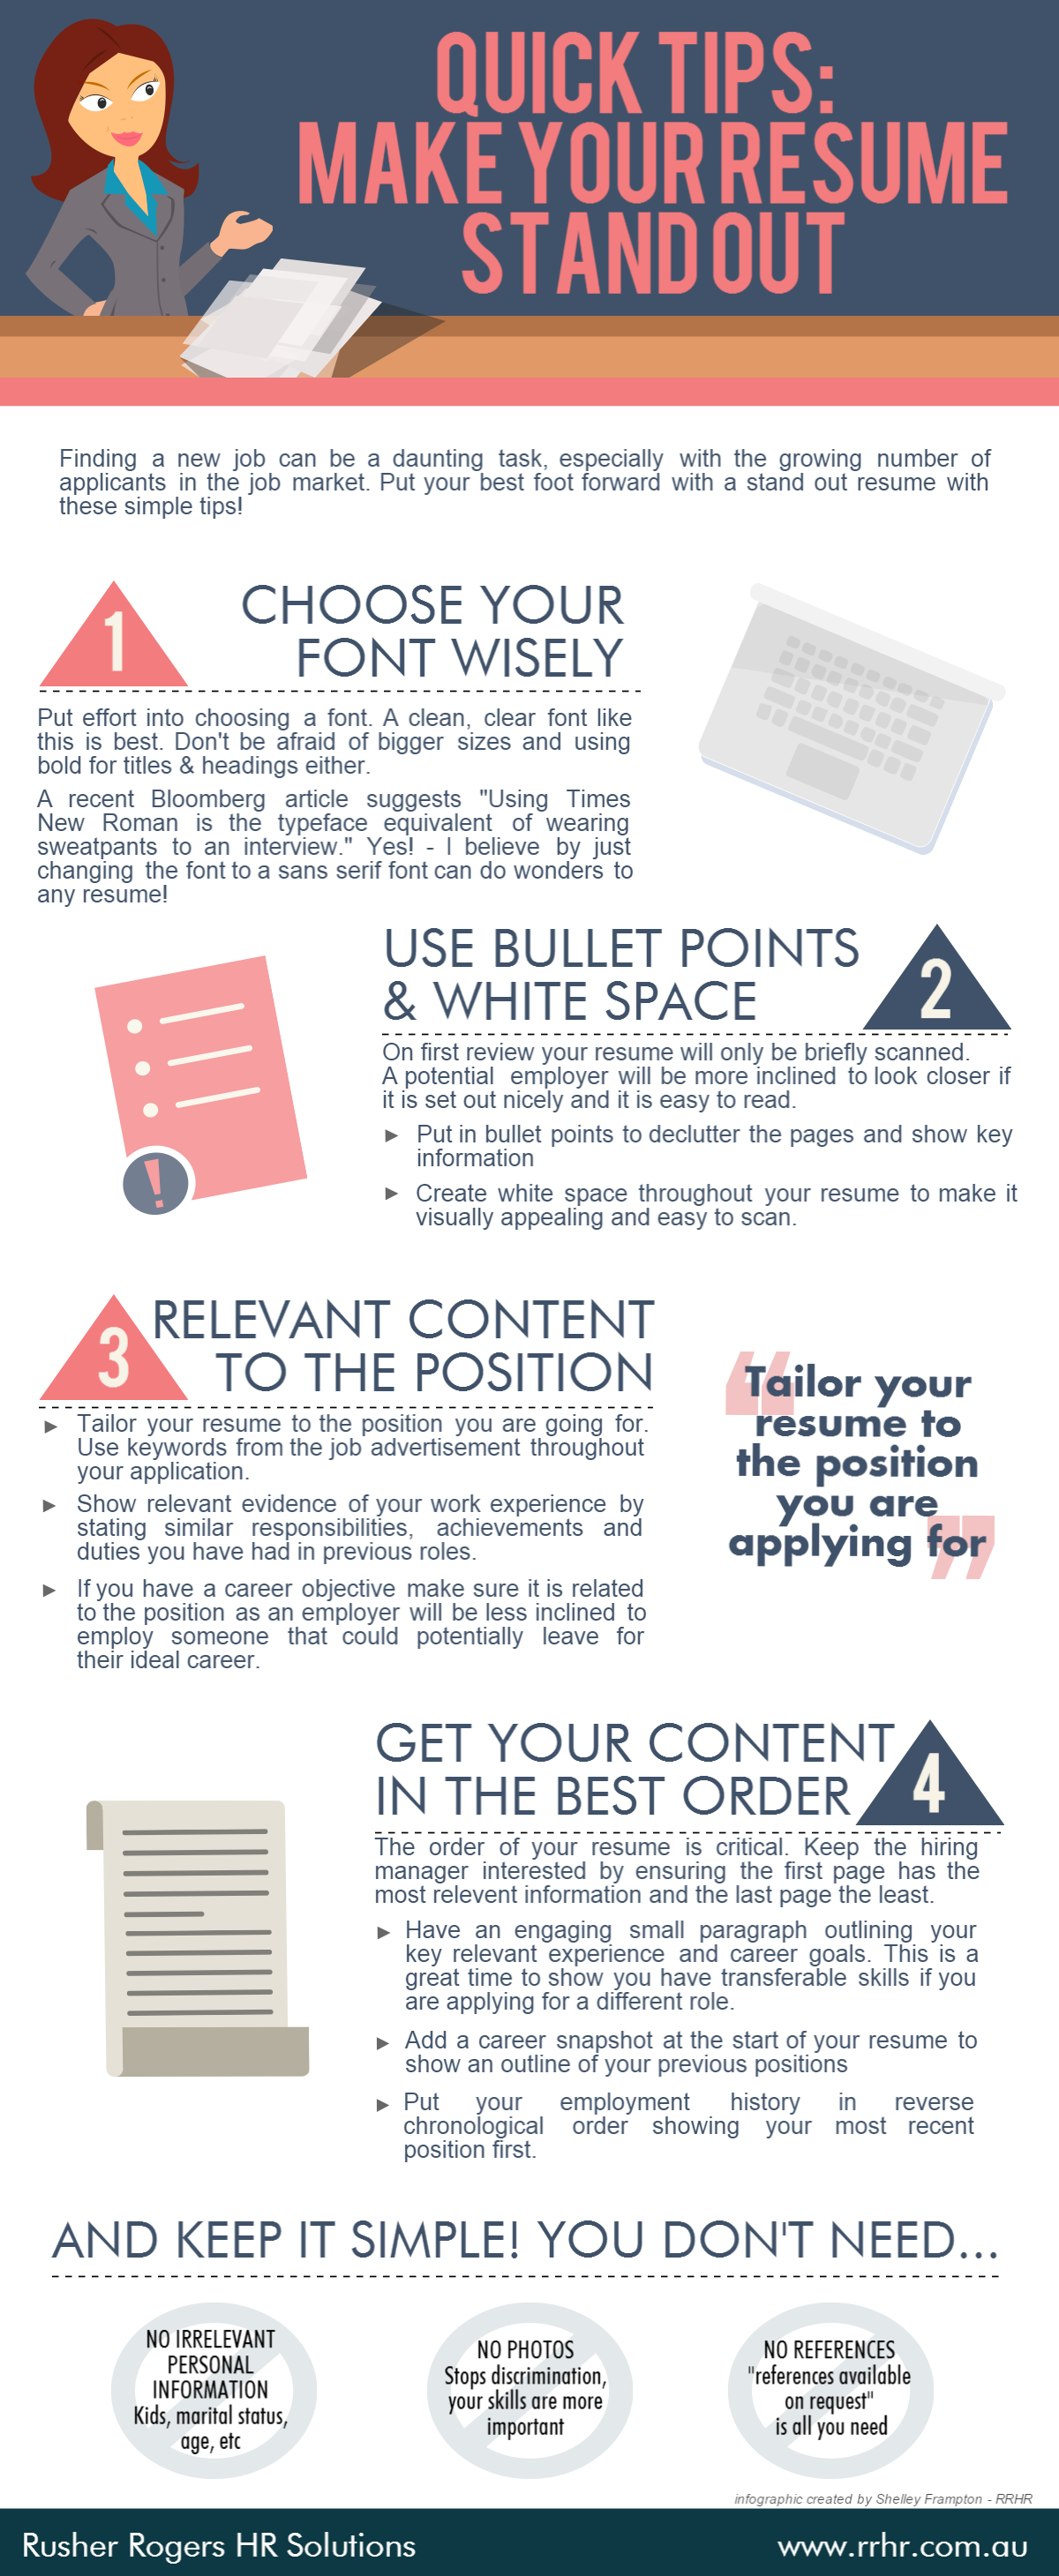 Quick Tips Make Your Resume Stand Out INFOGRAPHIC